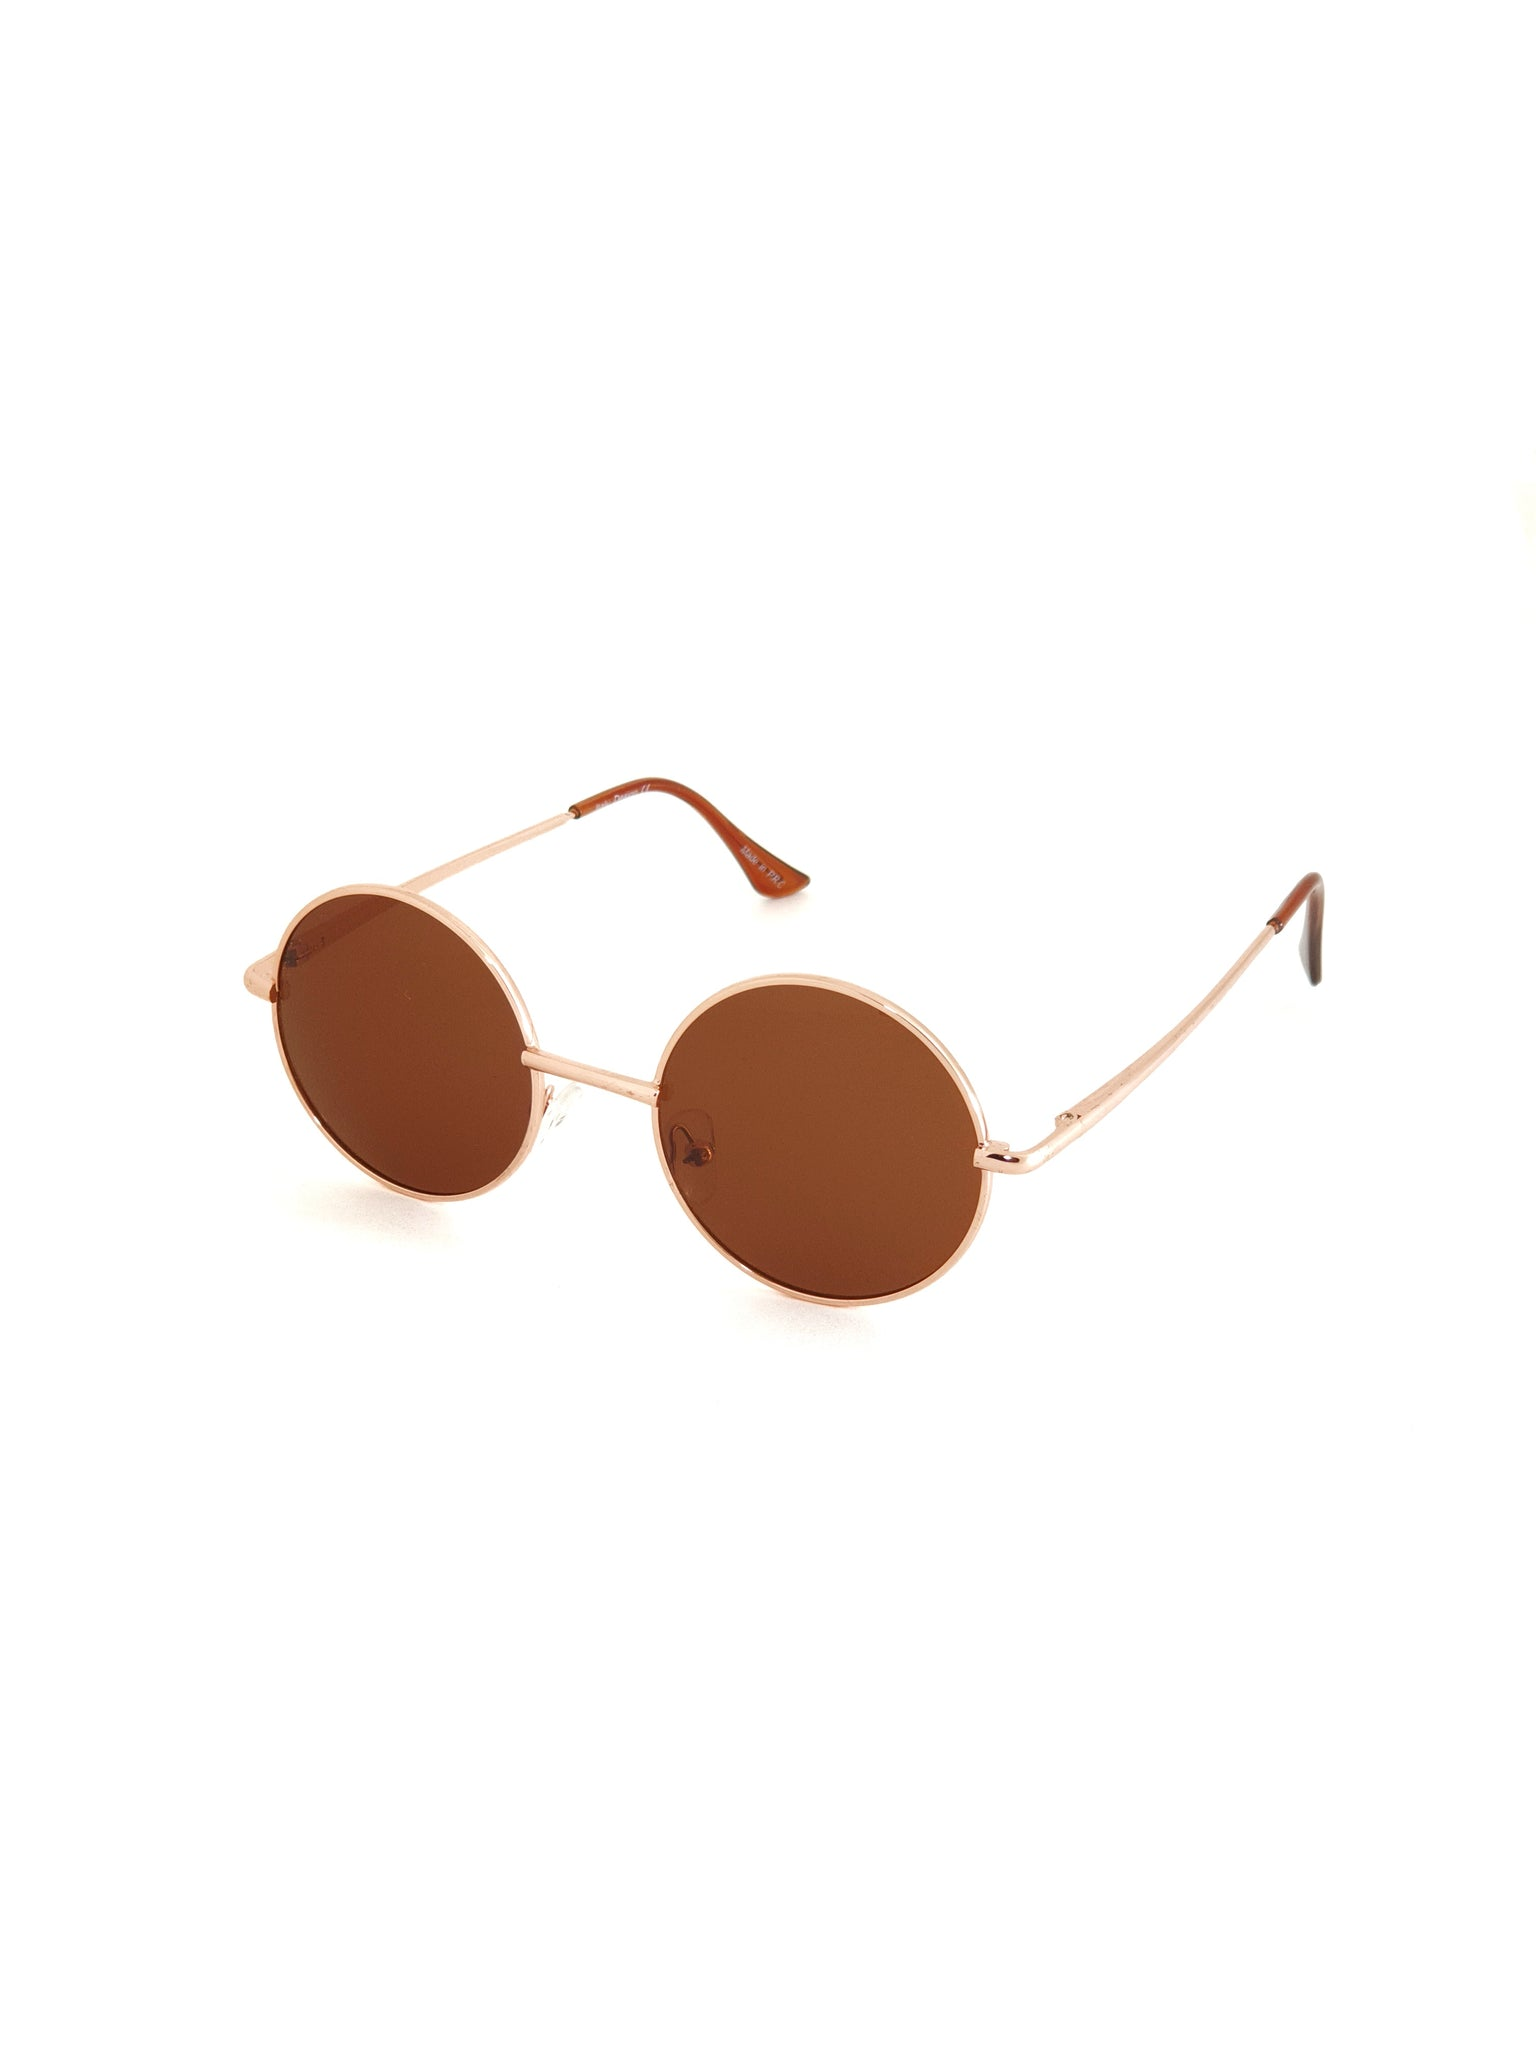 Retro Circle Sunglasses - Brown